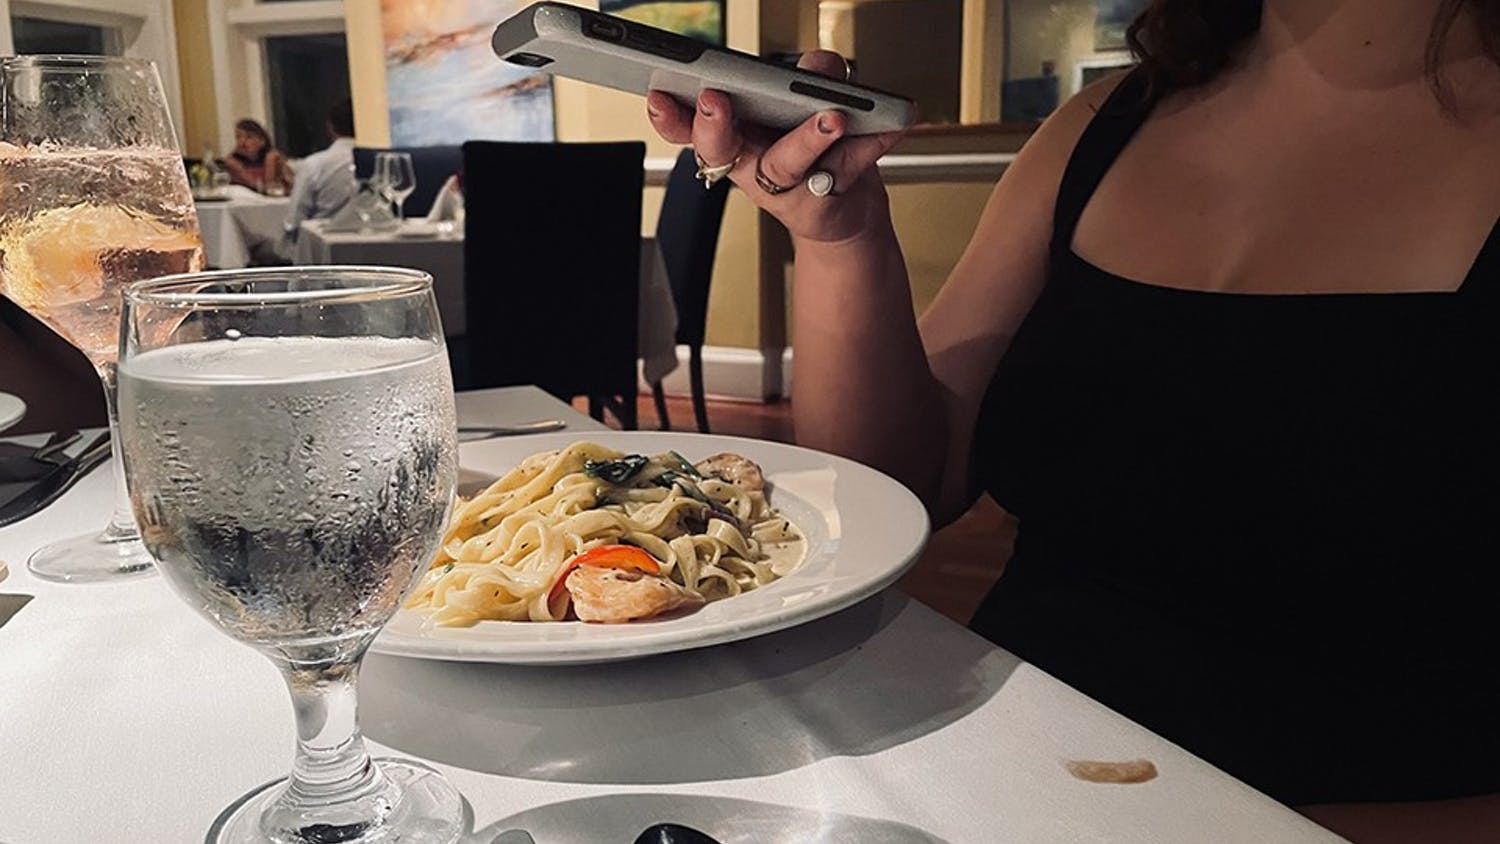 A person uses their phone to get a snapshot of their dinner served at a restaurant.